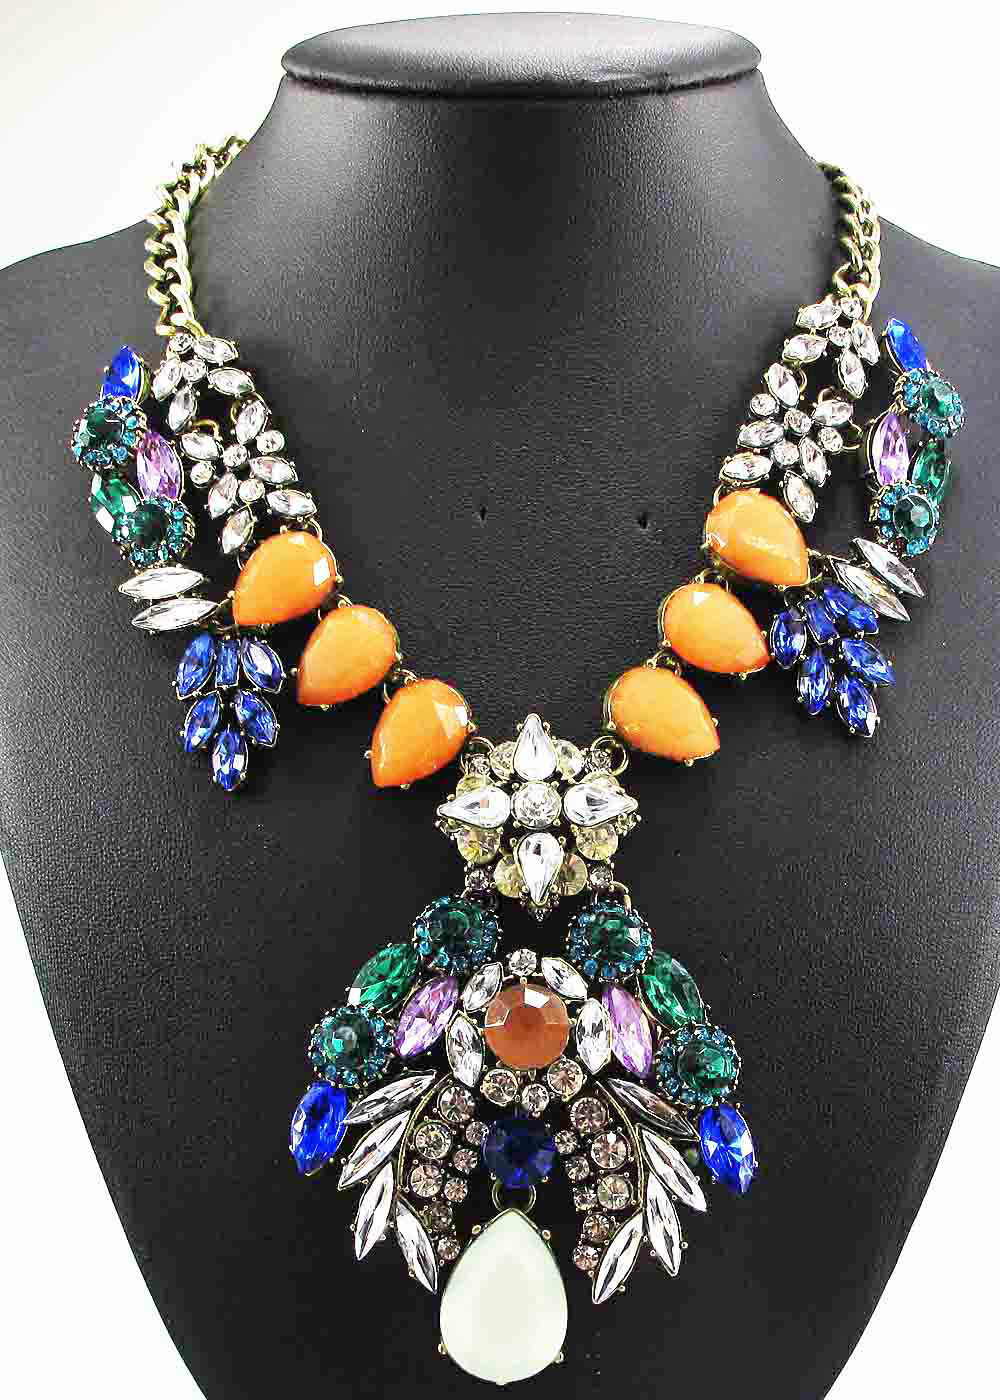 Newest Gorgeous Fashion Necklace owl Jewelry crystal ra Department Statement Necklace Women Choker Necklaces Pendants(China (Mainland))